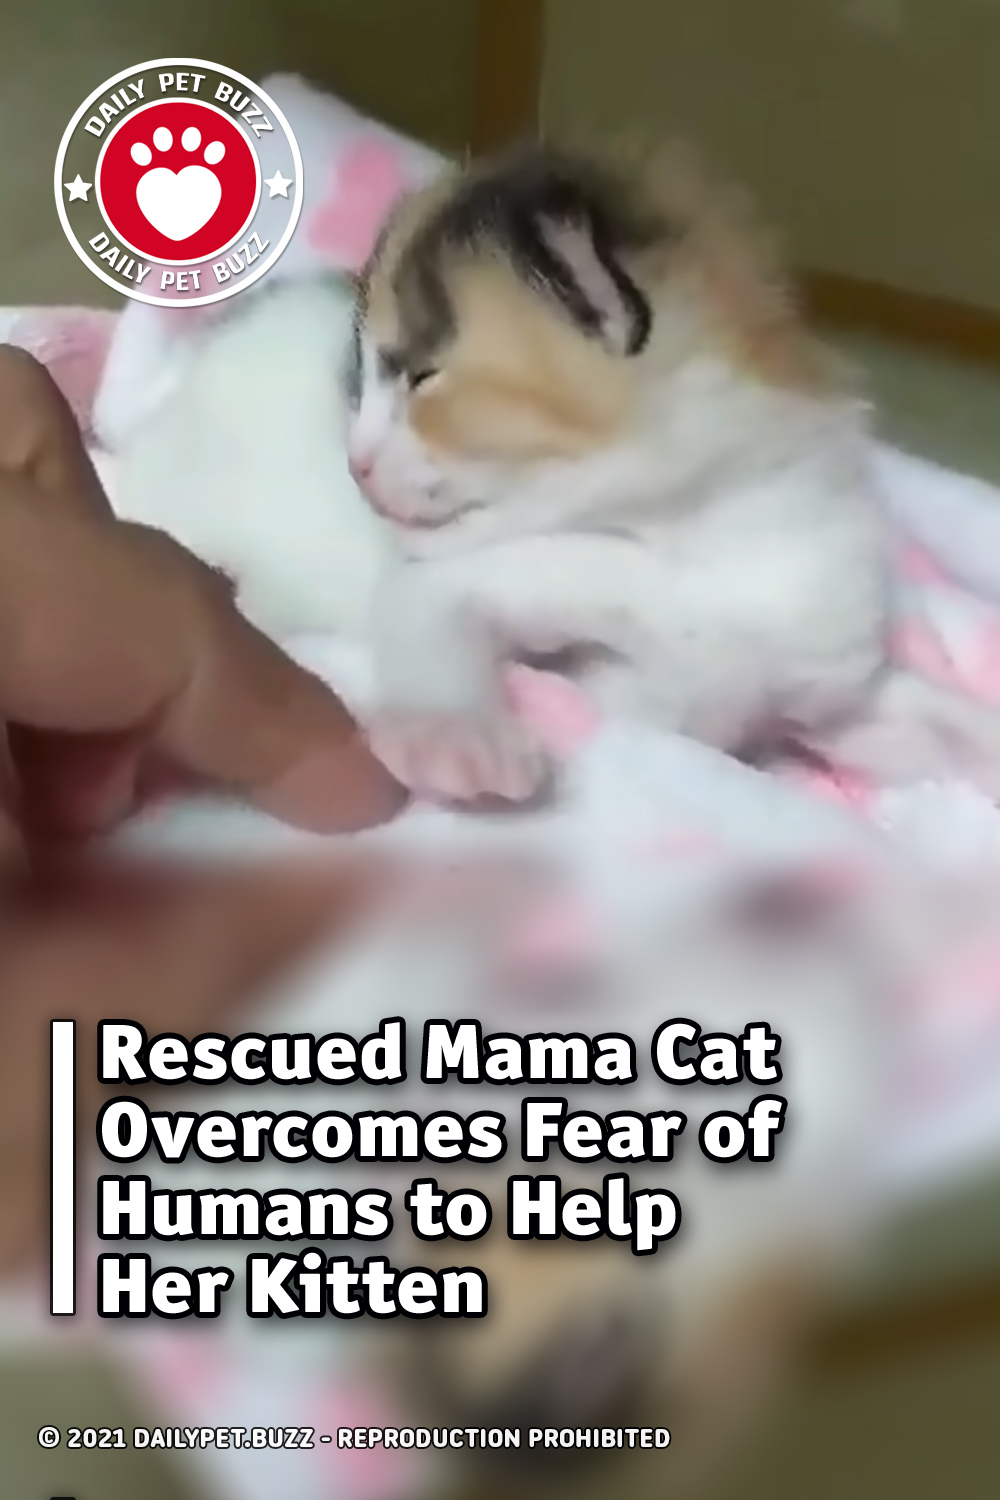 Rescued Mama Cat Overcomes Fear of Humans to Help Her Kitten